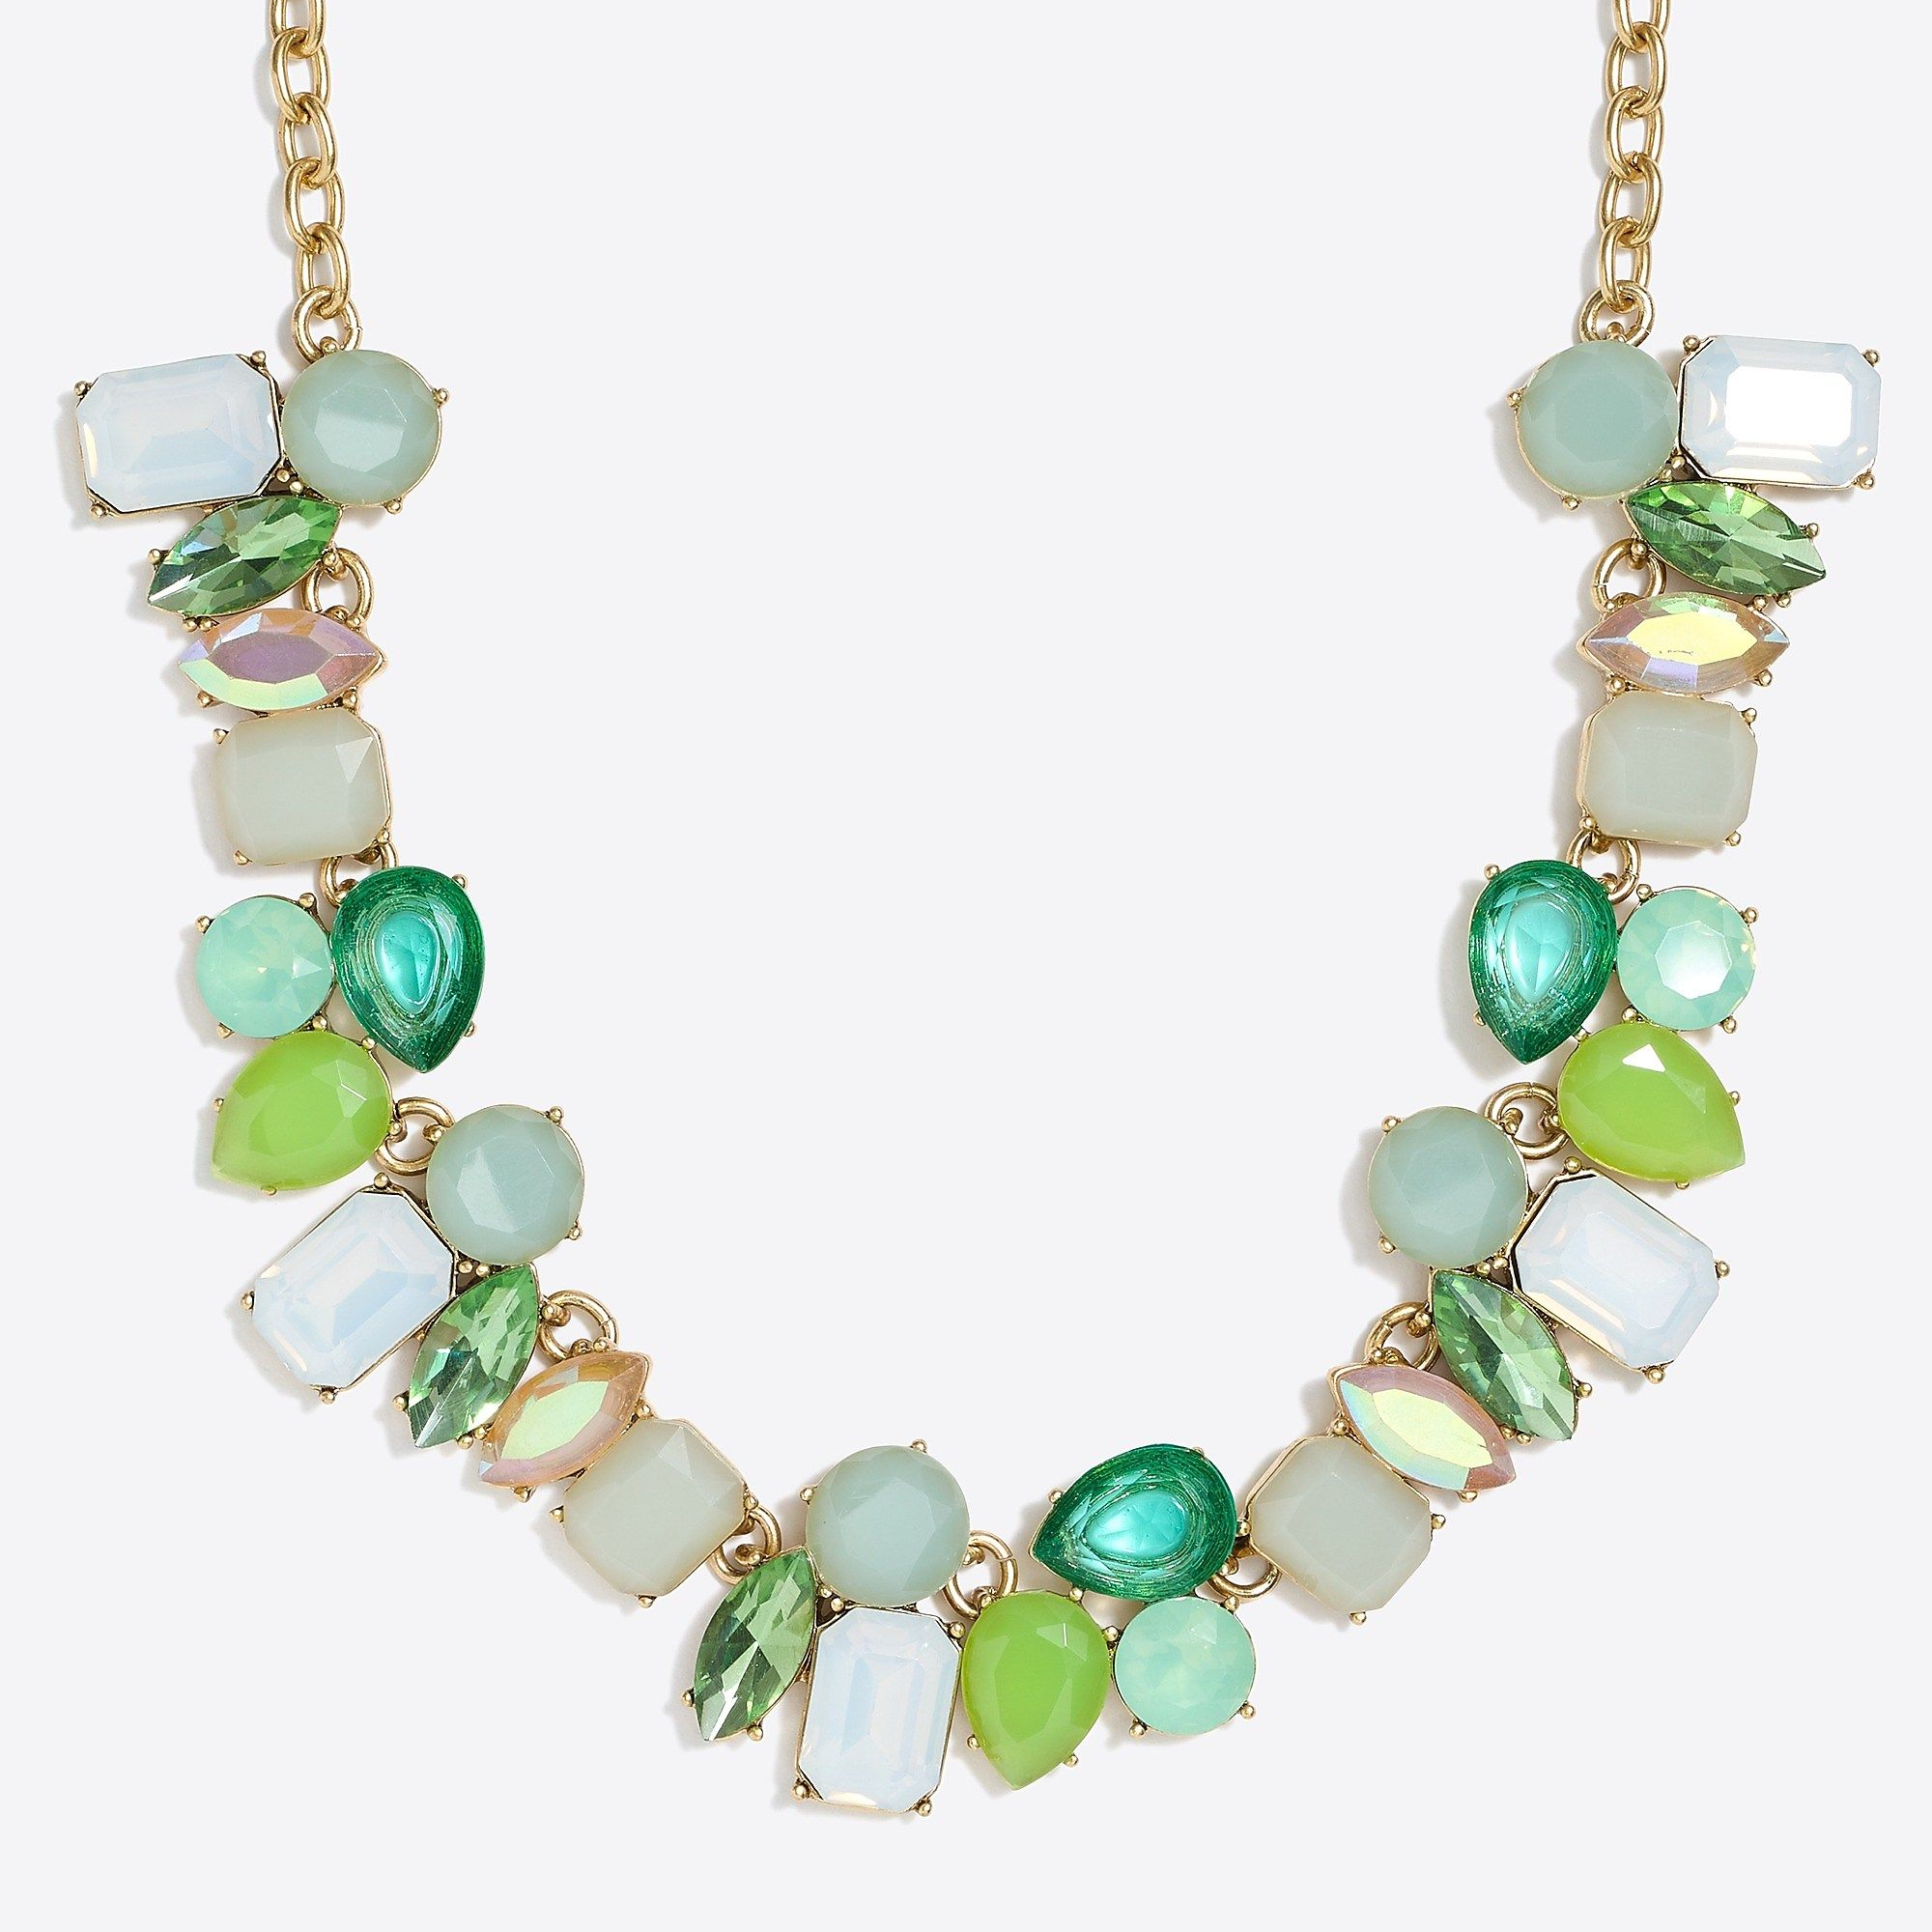 Sea glass crystal collage necklace in jewelry pinterest